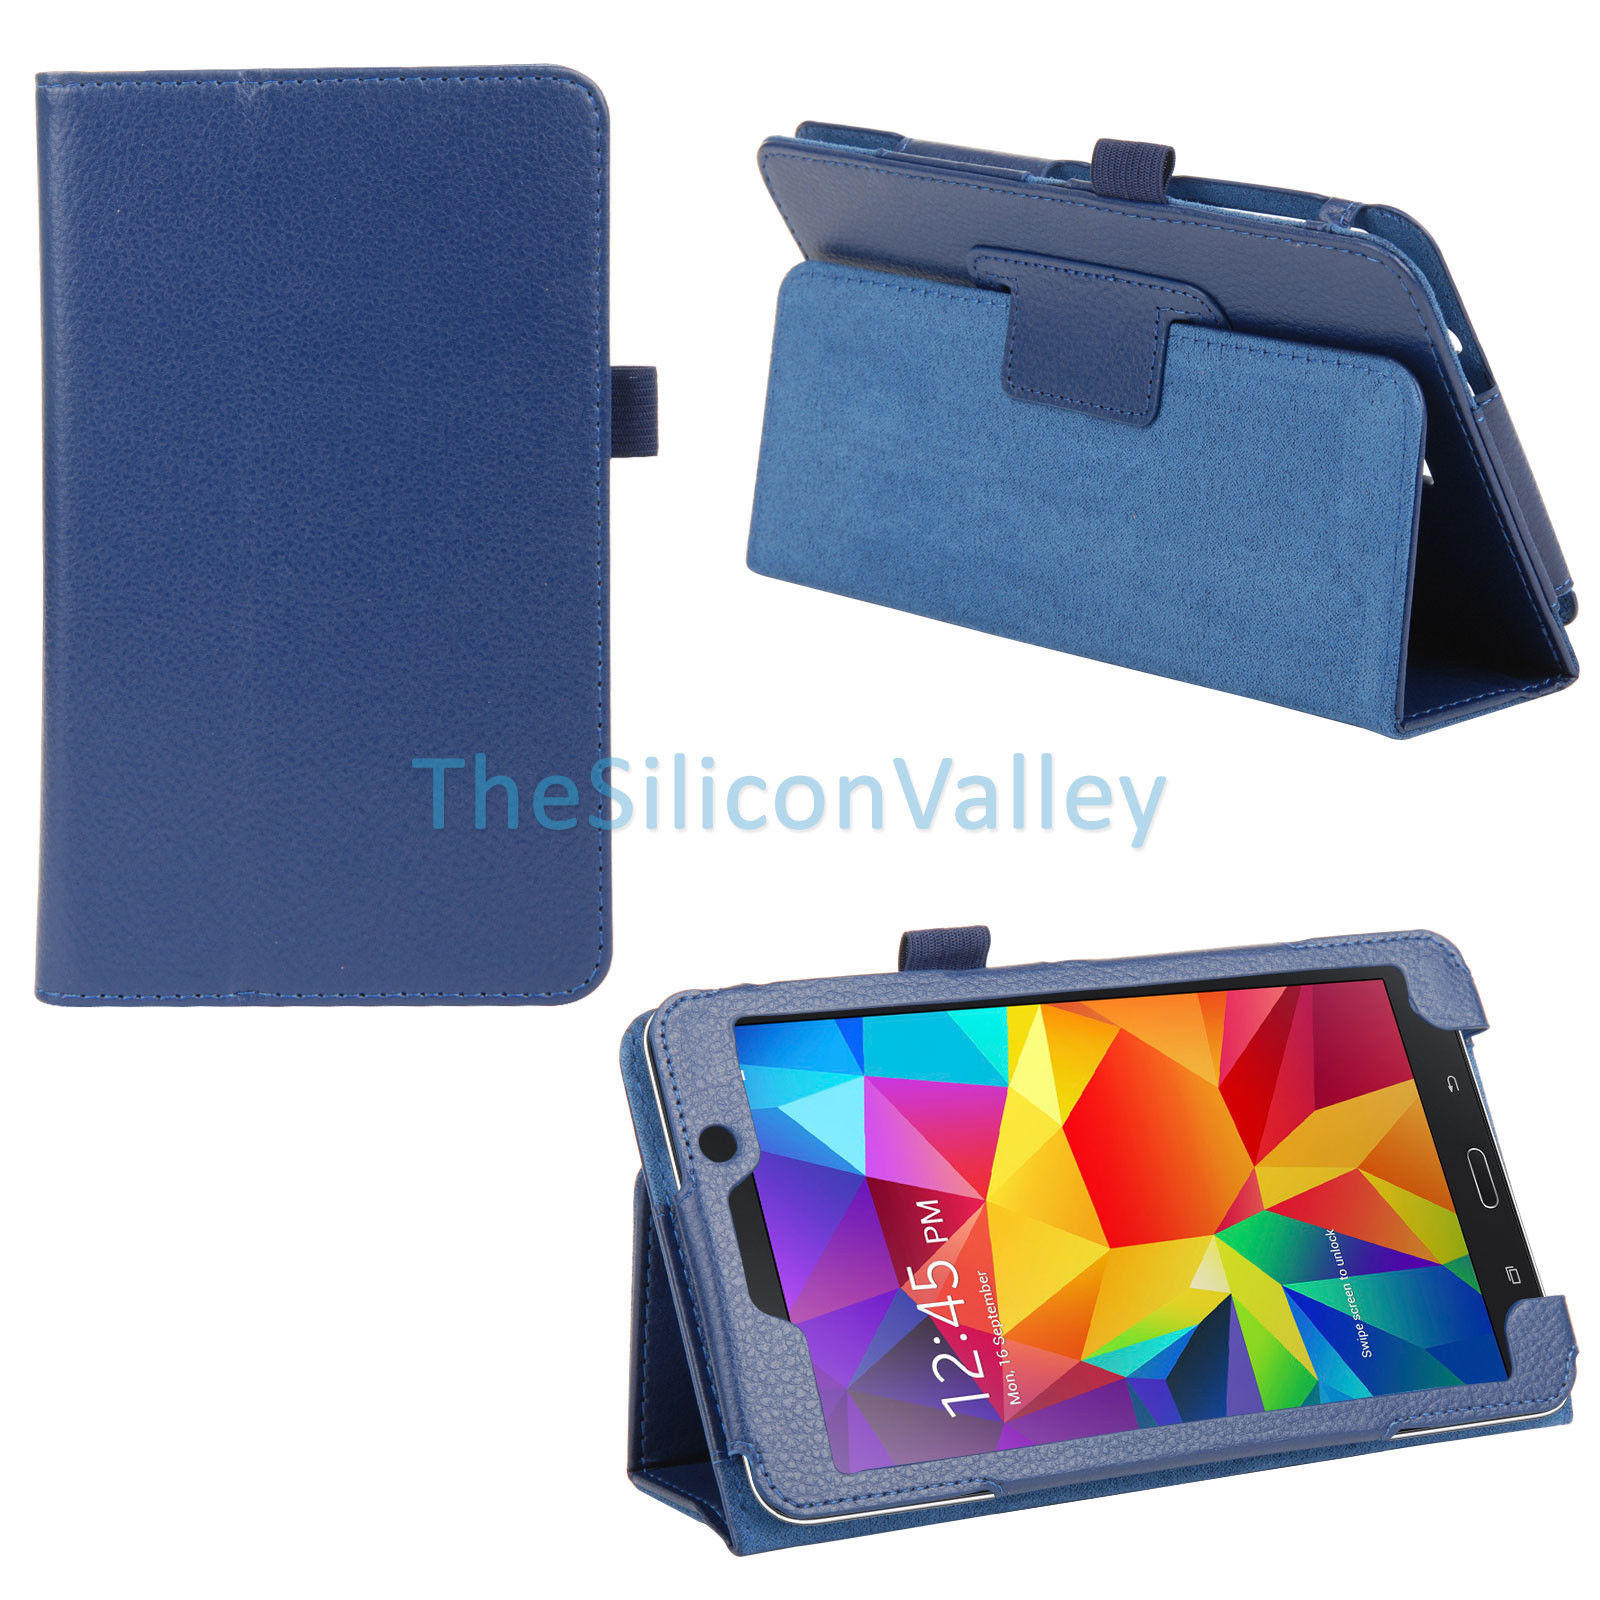 Folio Leather Case Cover Stand For Samsung Galaxy Tab 4 7.0 Tablet SMT230NU T237